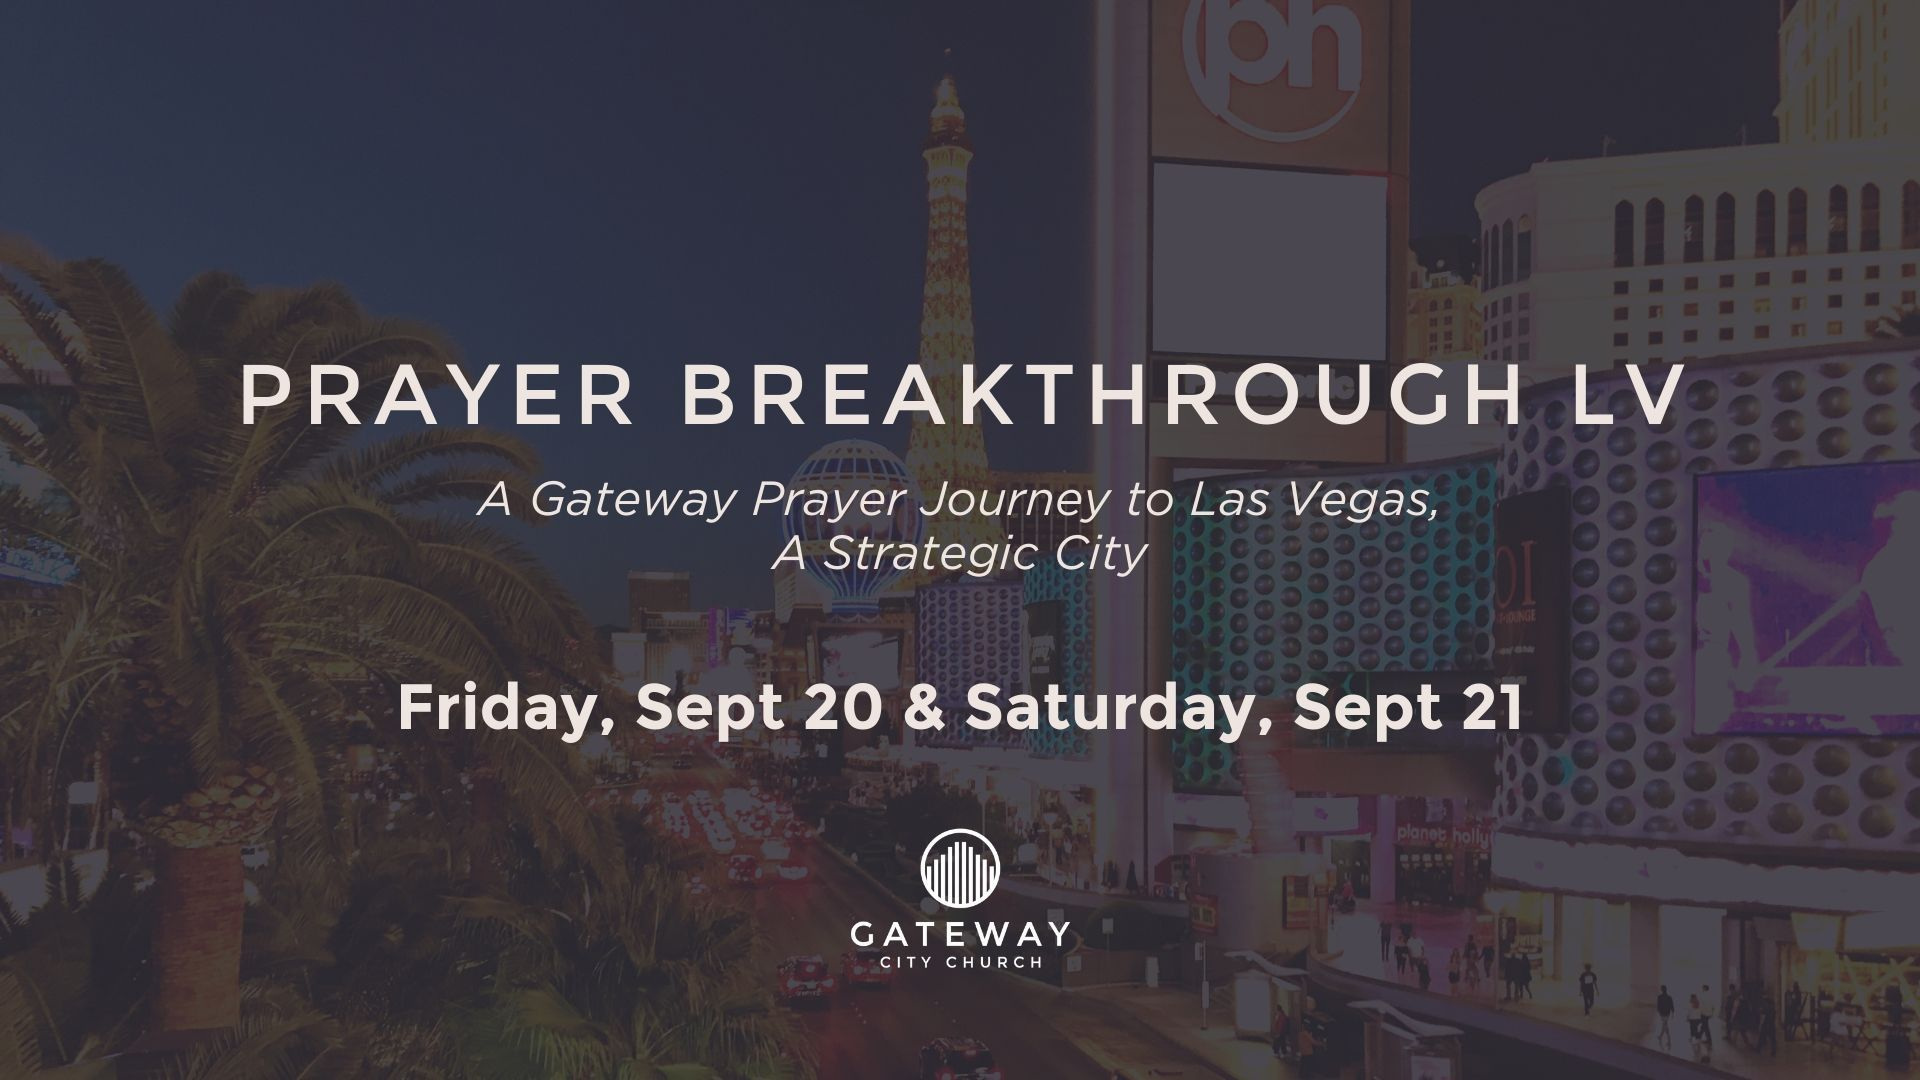 PRAYER%2BBREAKTHROUGH%2BLV%2B%2528sept%2529.jpg